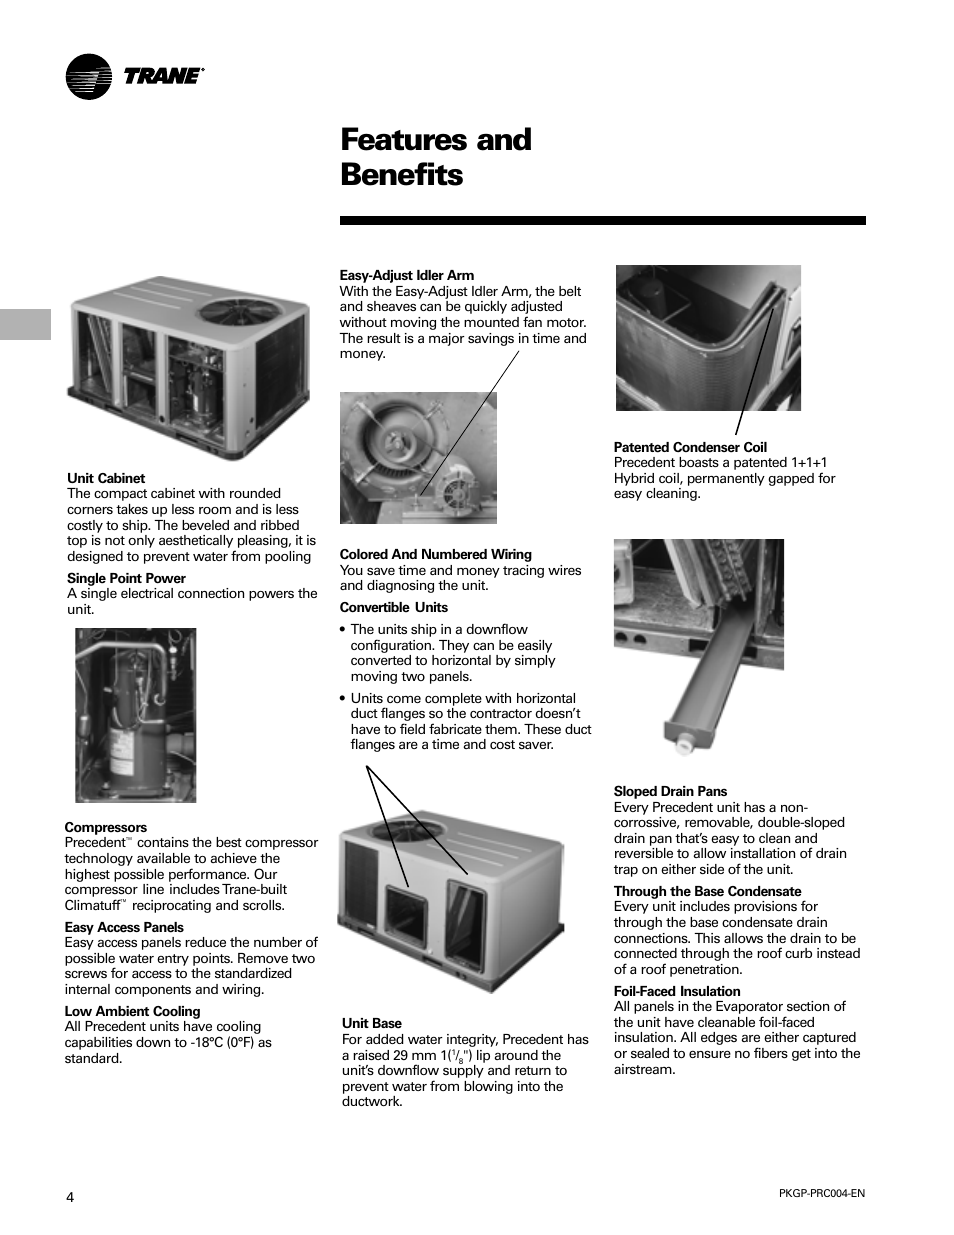 Features and benefits | Trane WSC060-120 User Manual | Page 4 / 52